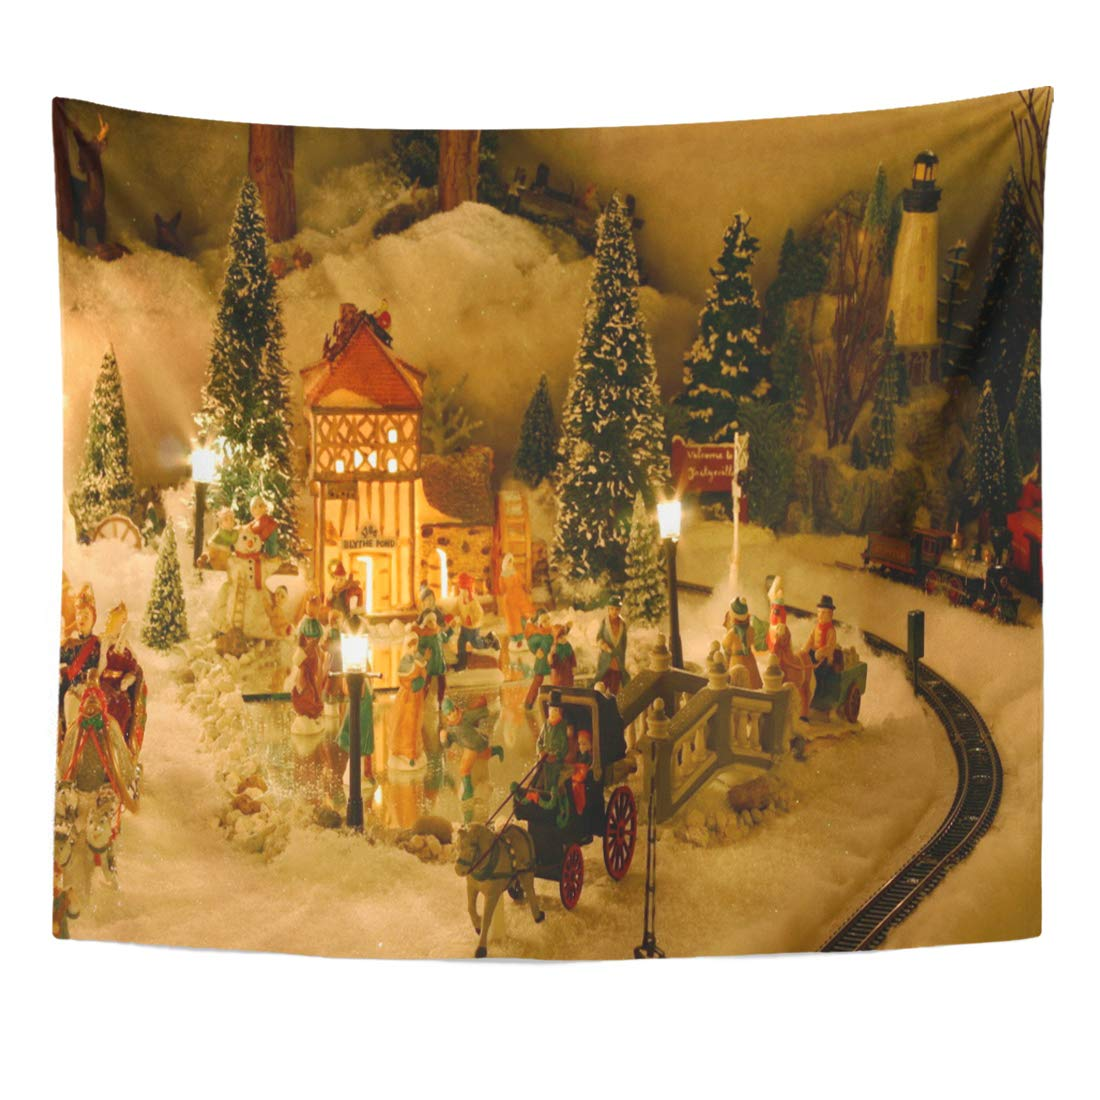 Ufaezu Tree People Christmas Village Miniature Houses Train Victorian Ceramic Wall Art Hanging Tapestry Home Decor For Living Room Bedroom Dorm 60x80 Inch Walmart Com Walmart Com